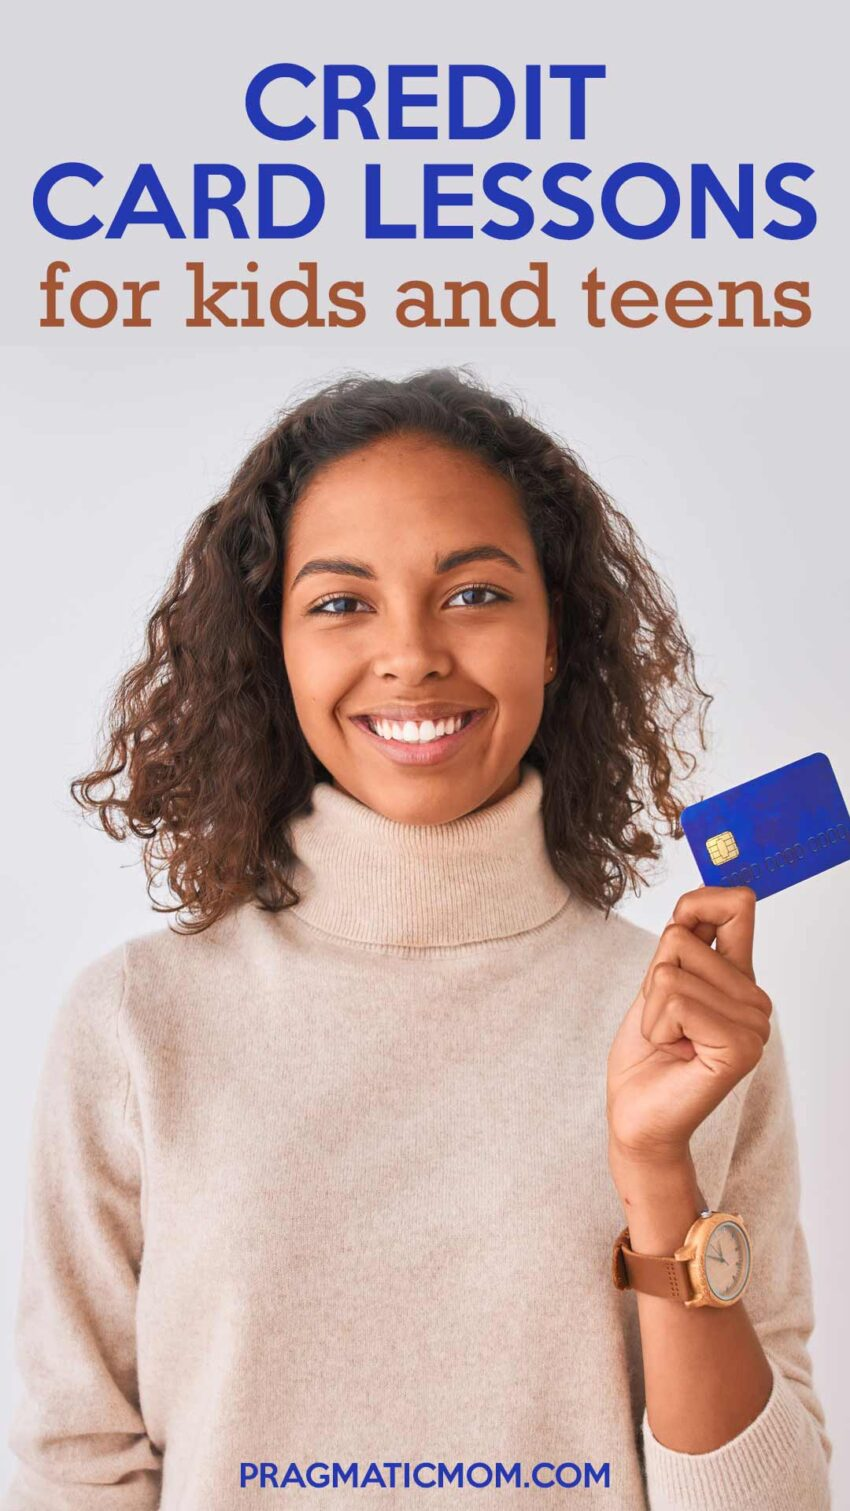 Credit Card Lessons for Kids